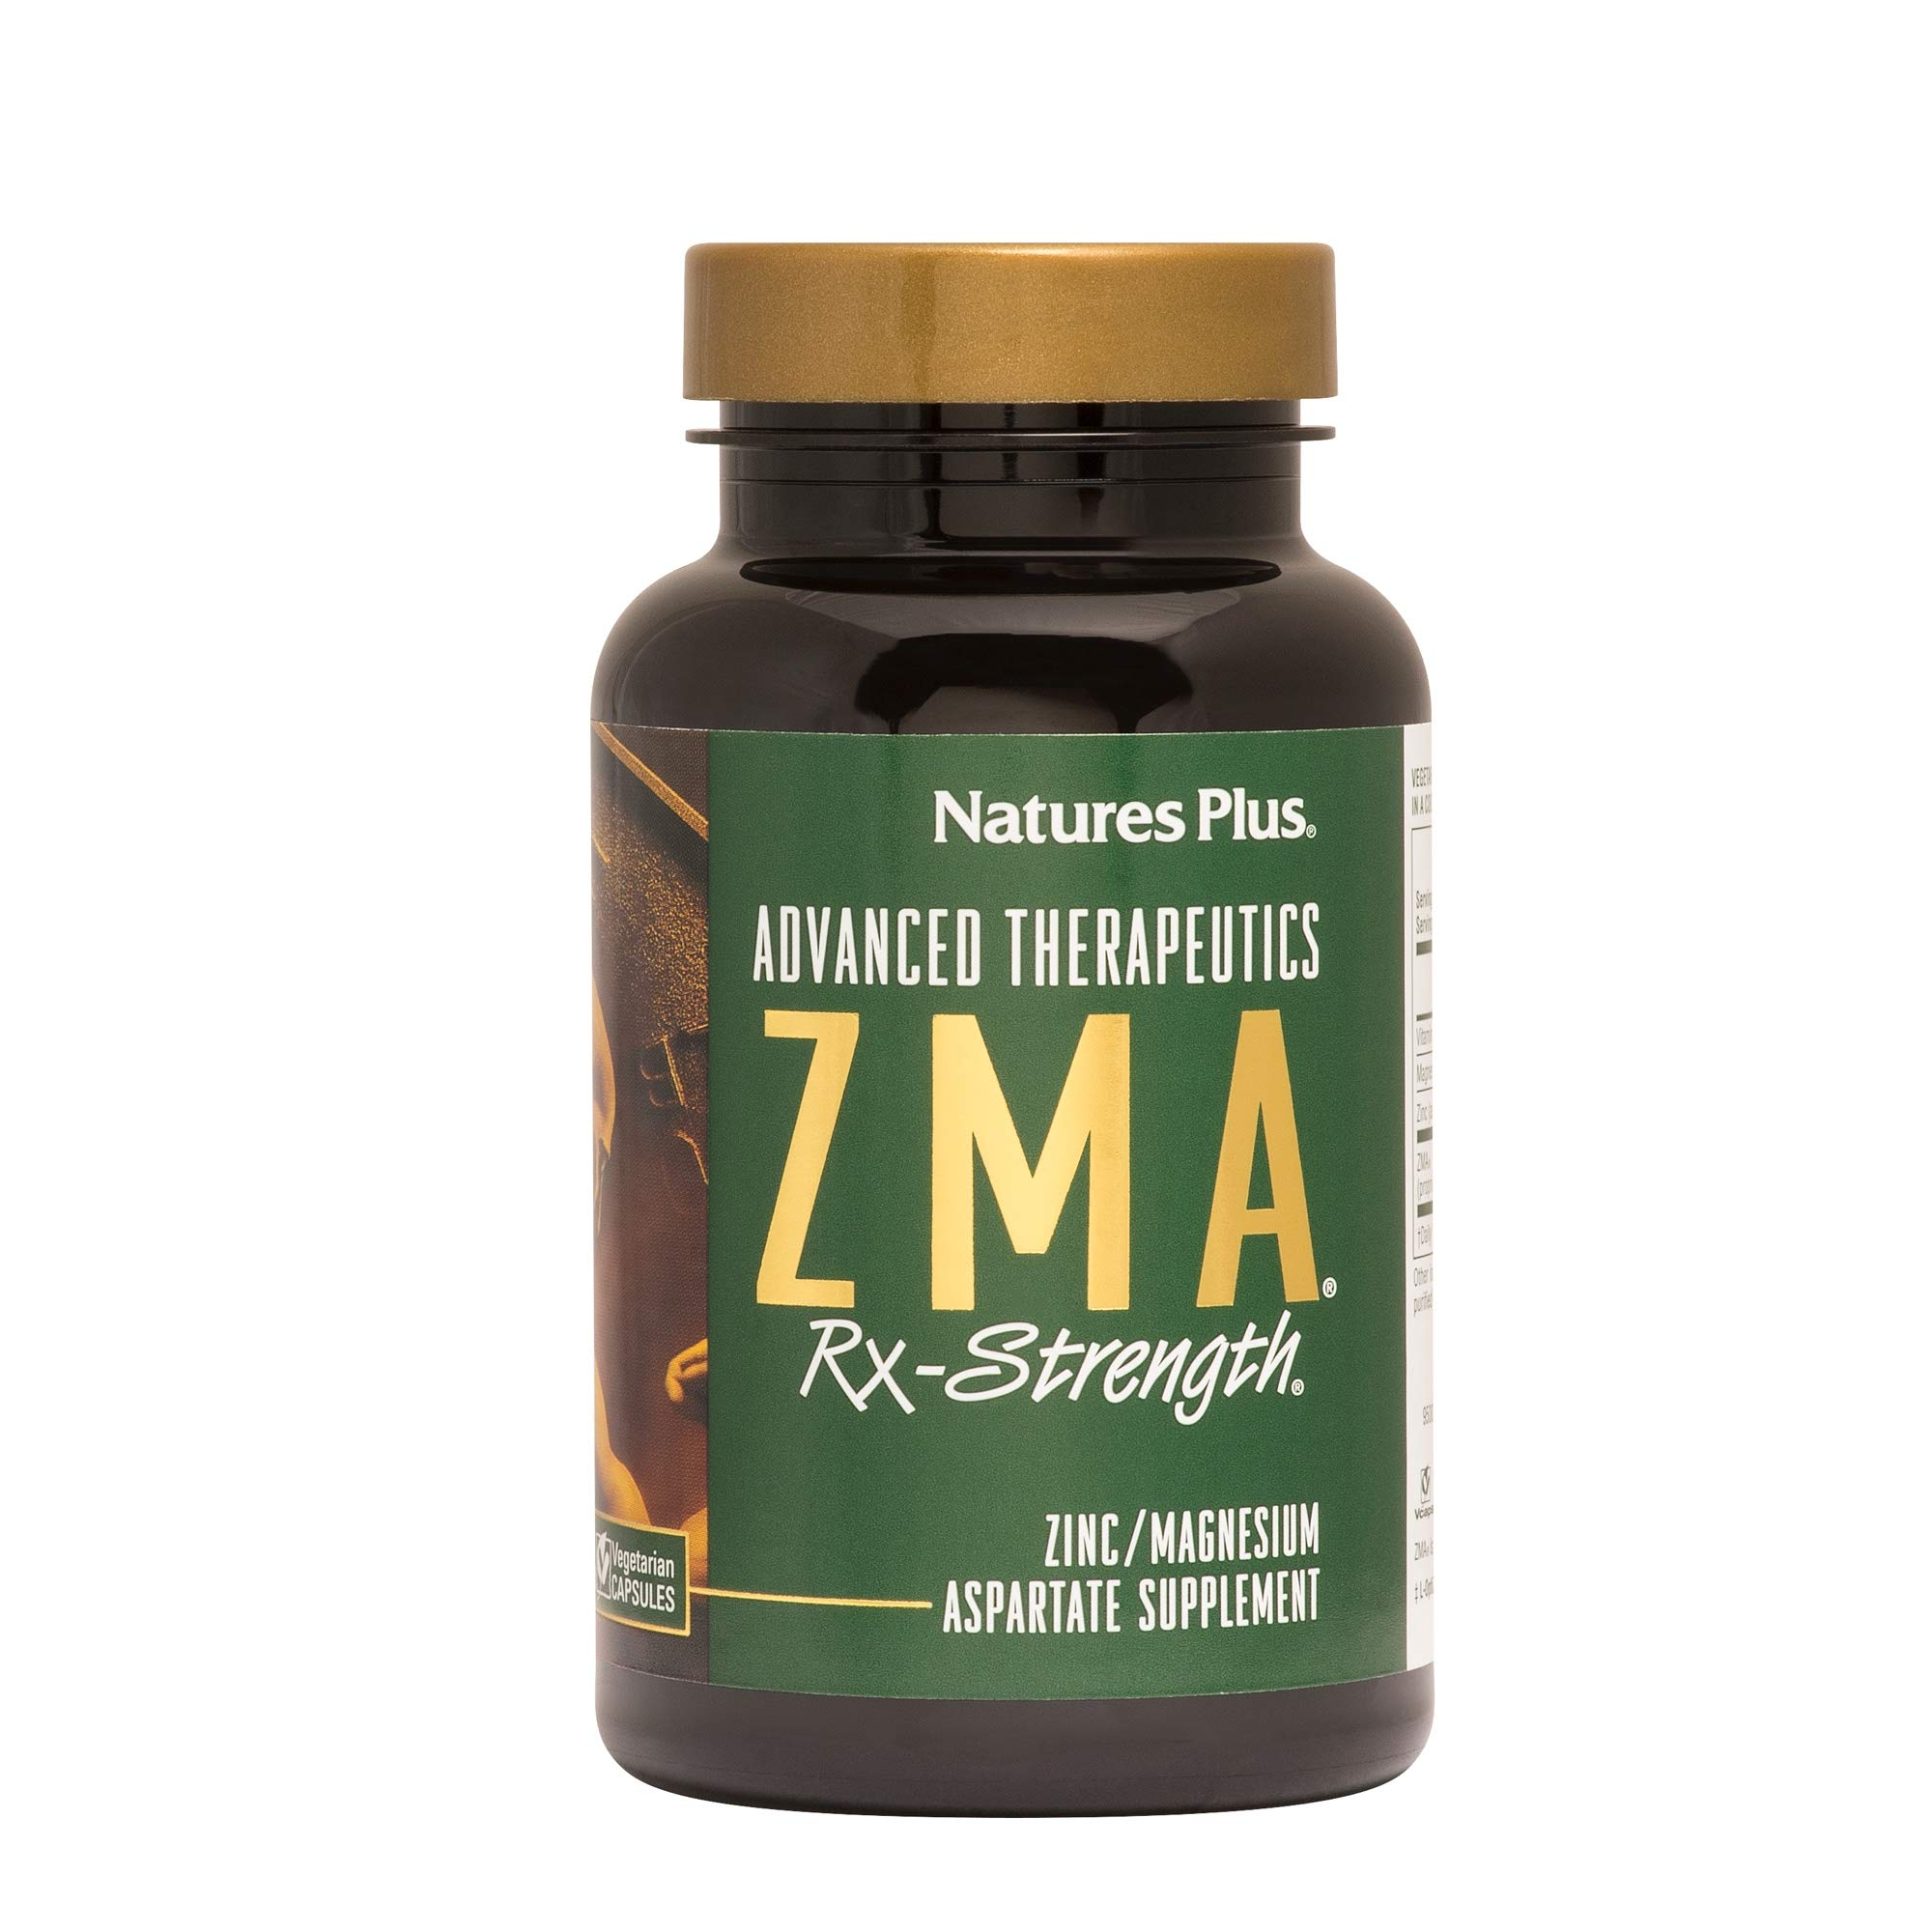 Natures Plus ZMA Rx Strength - 90 Vegetarian Capsules - Zinc Magnesium Aspartate Supplement with Vitamin B6, Muscle Builder & Recovery Aid - Gluten Free - 30 Servings